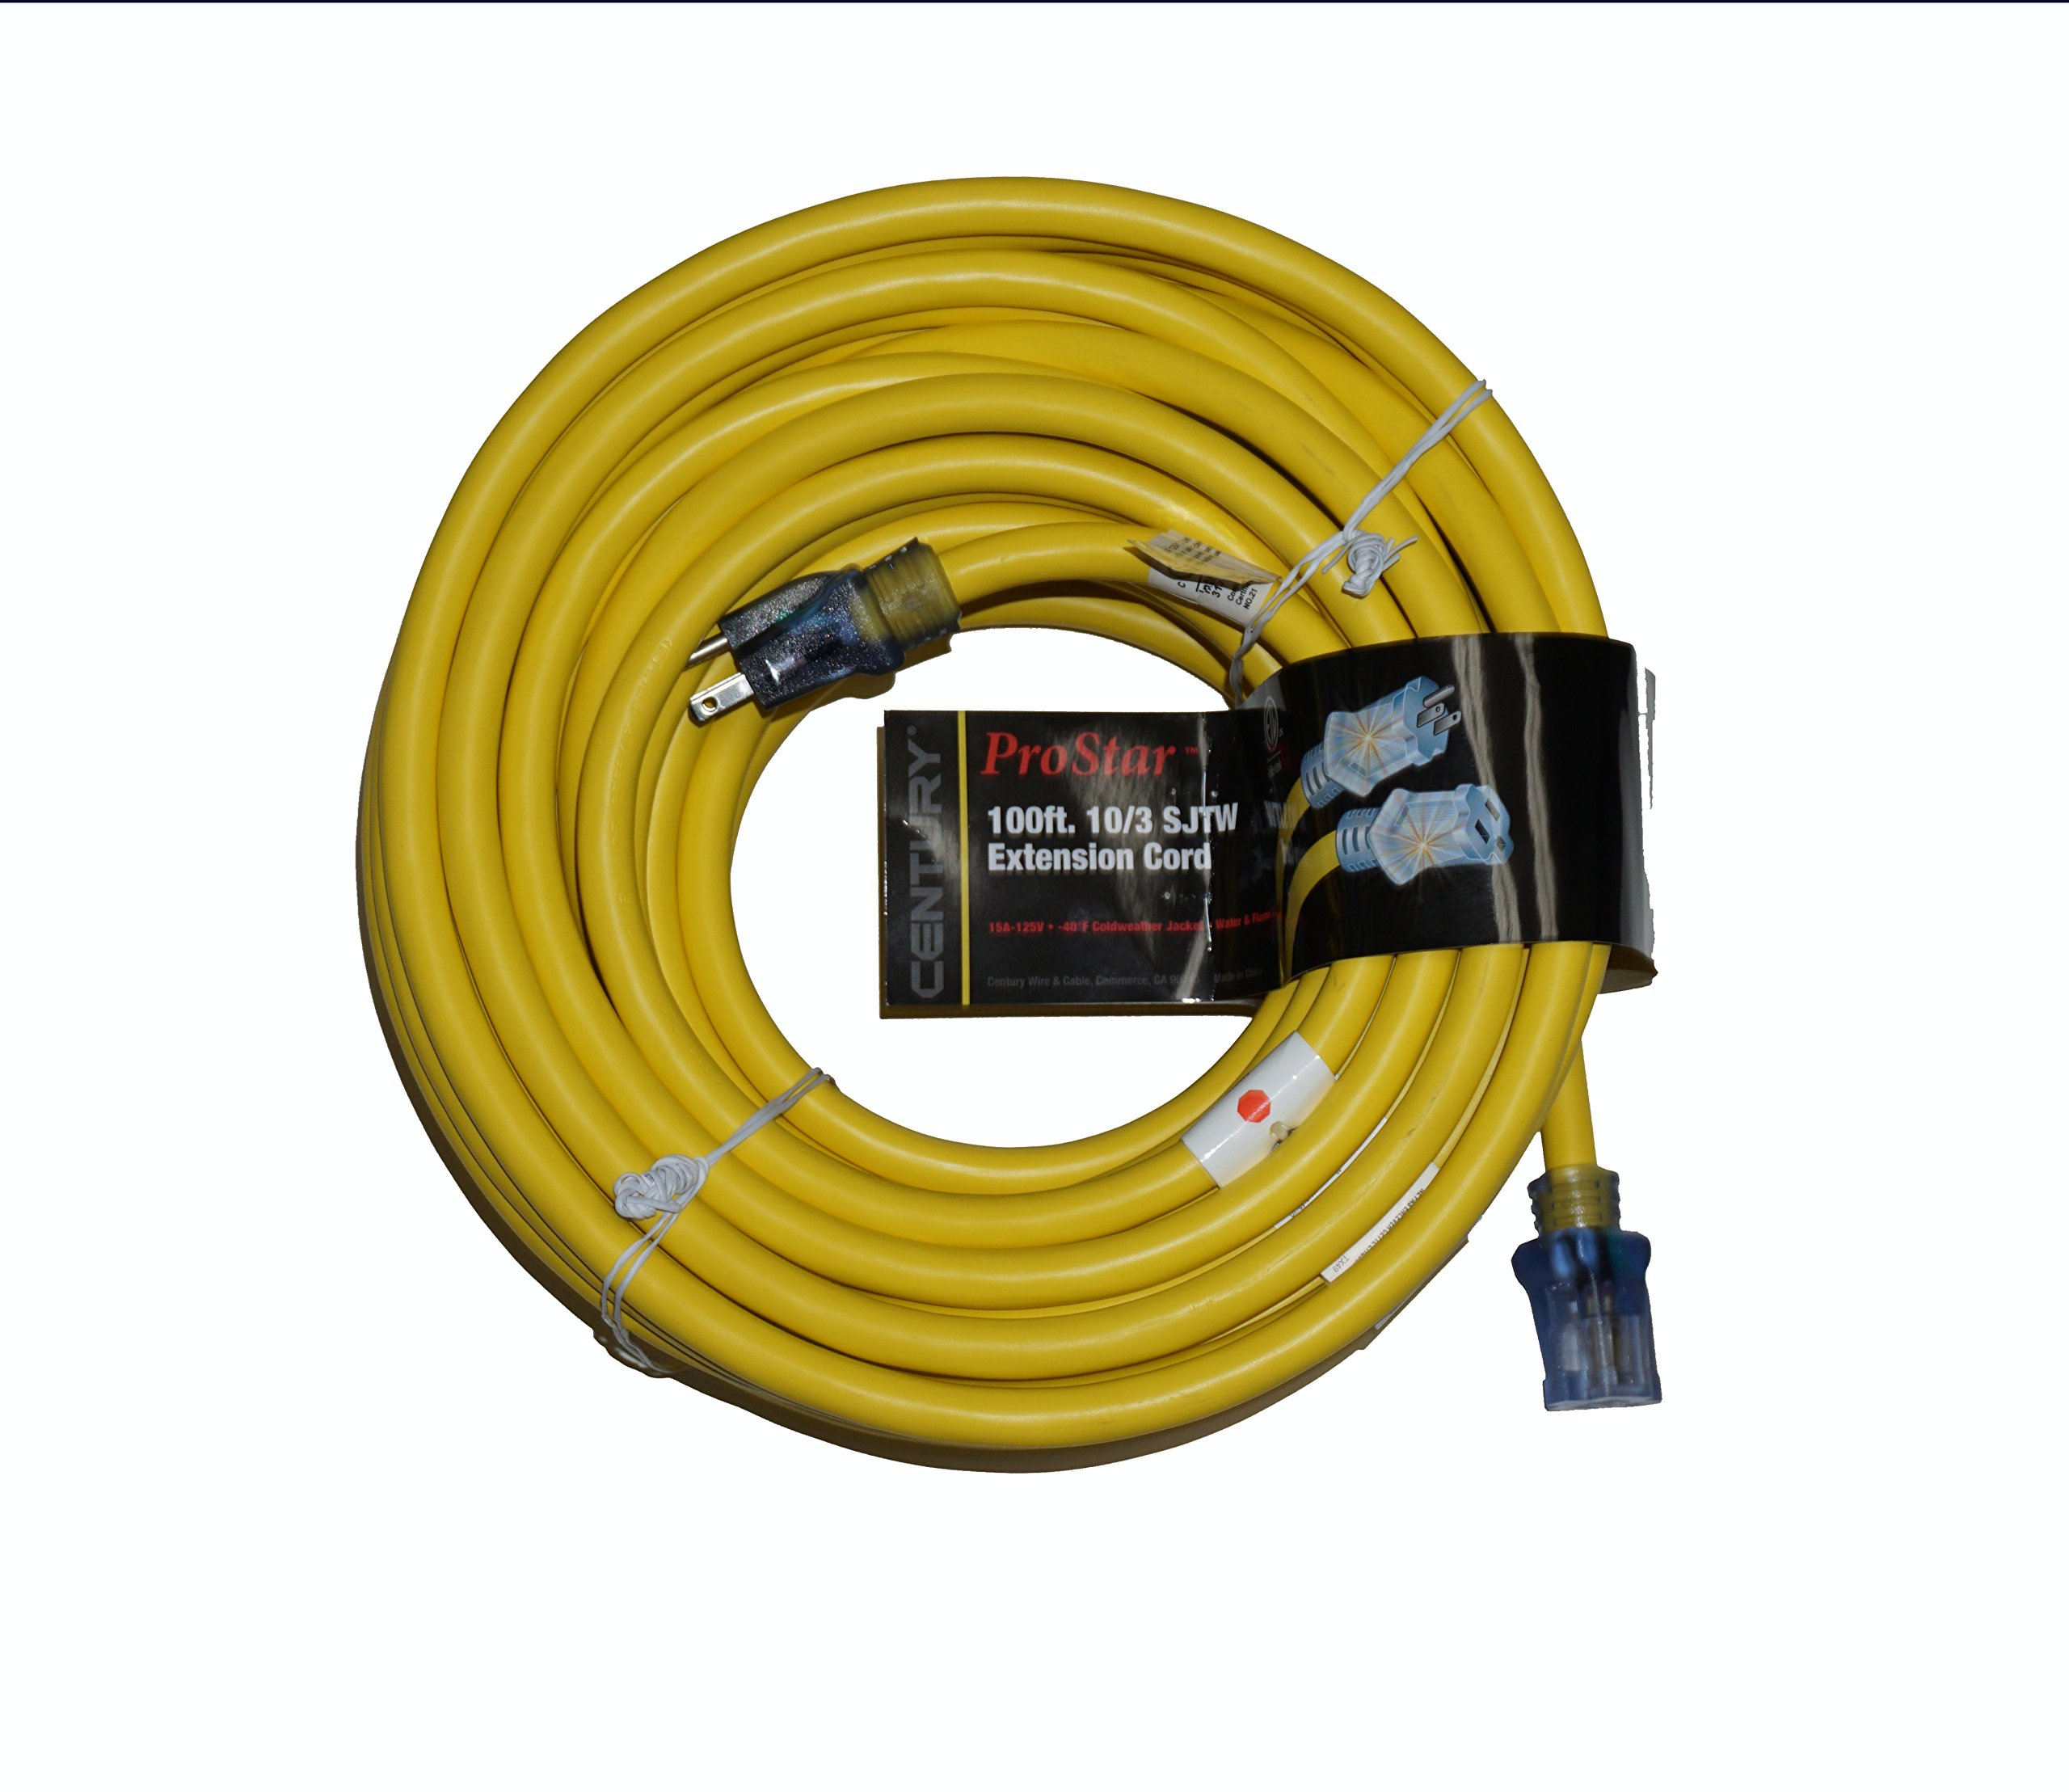 ProStar 10 Gauge SJTW 3 Conductor 100 Foot Extension Cord With Lighted Ends - Yellow by Century (Image #1)